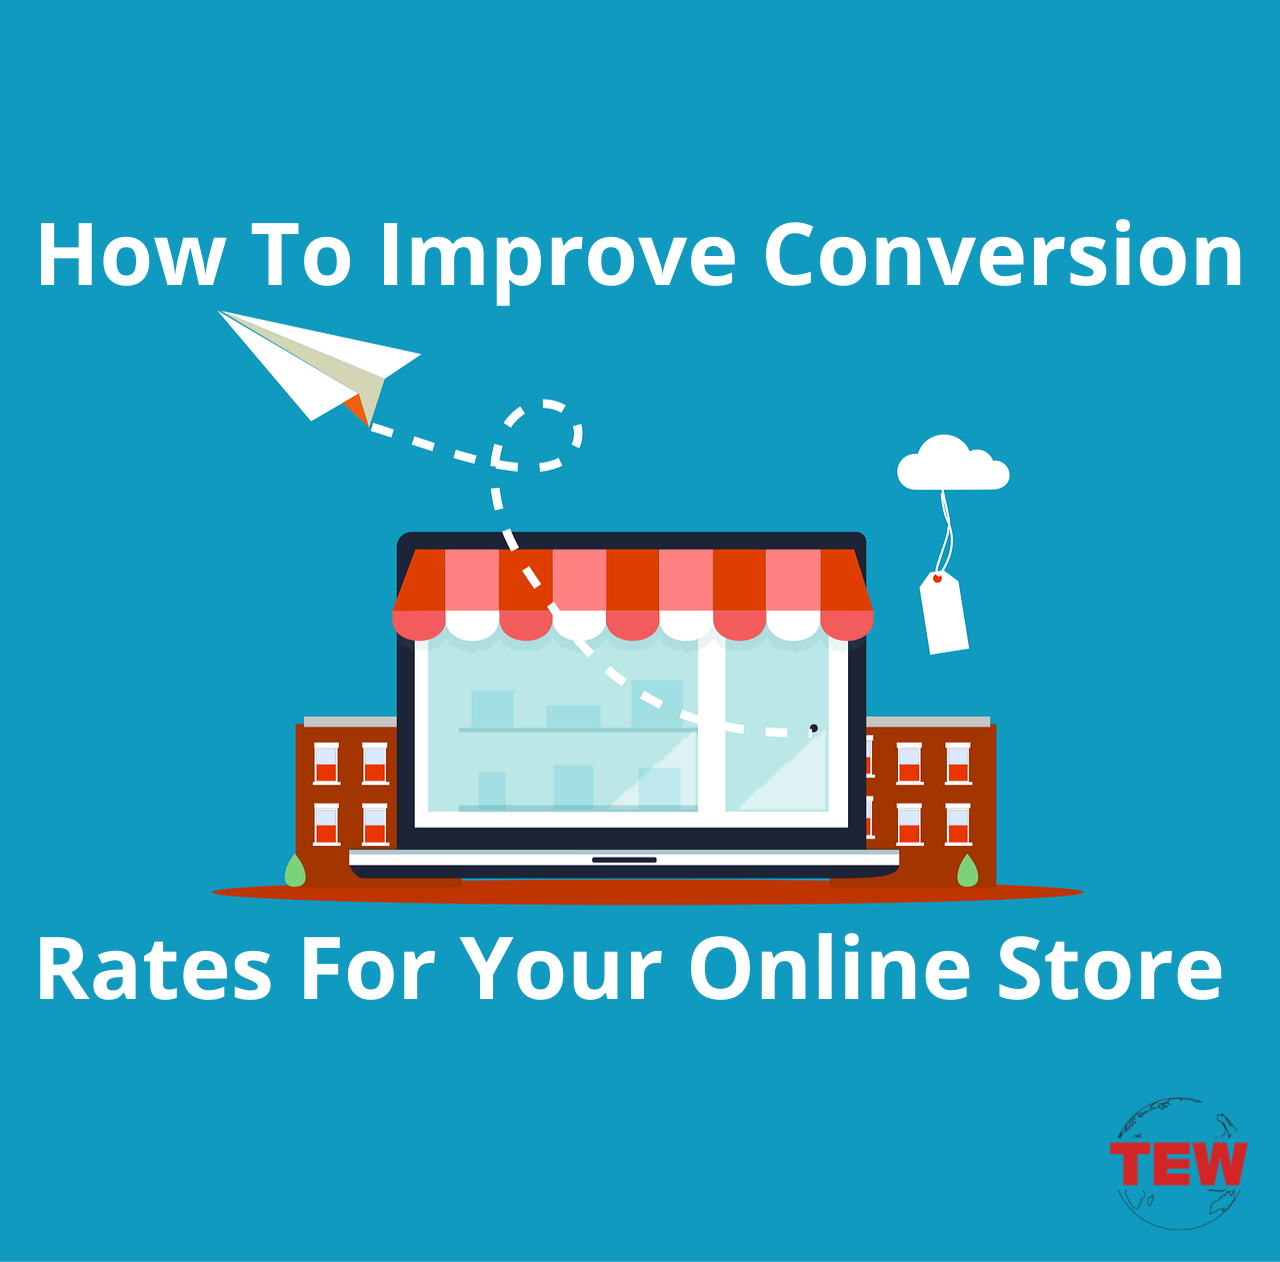 How To Improve Conversion Rates For Your Online Store